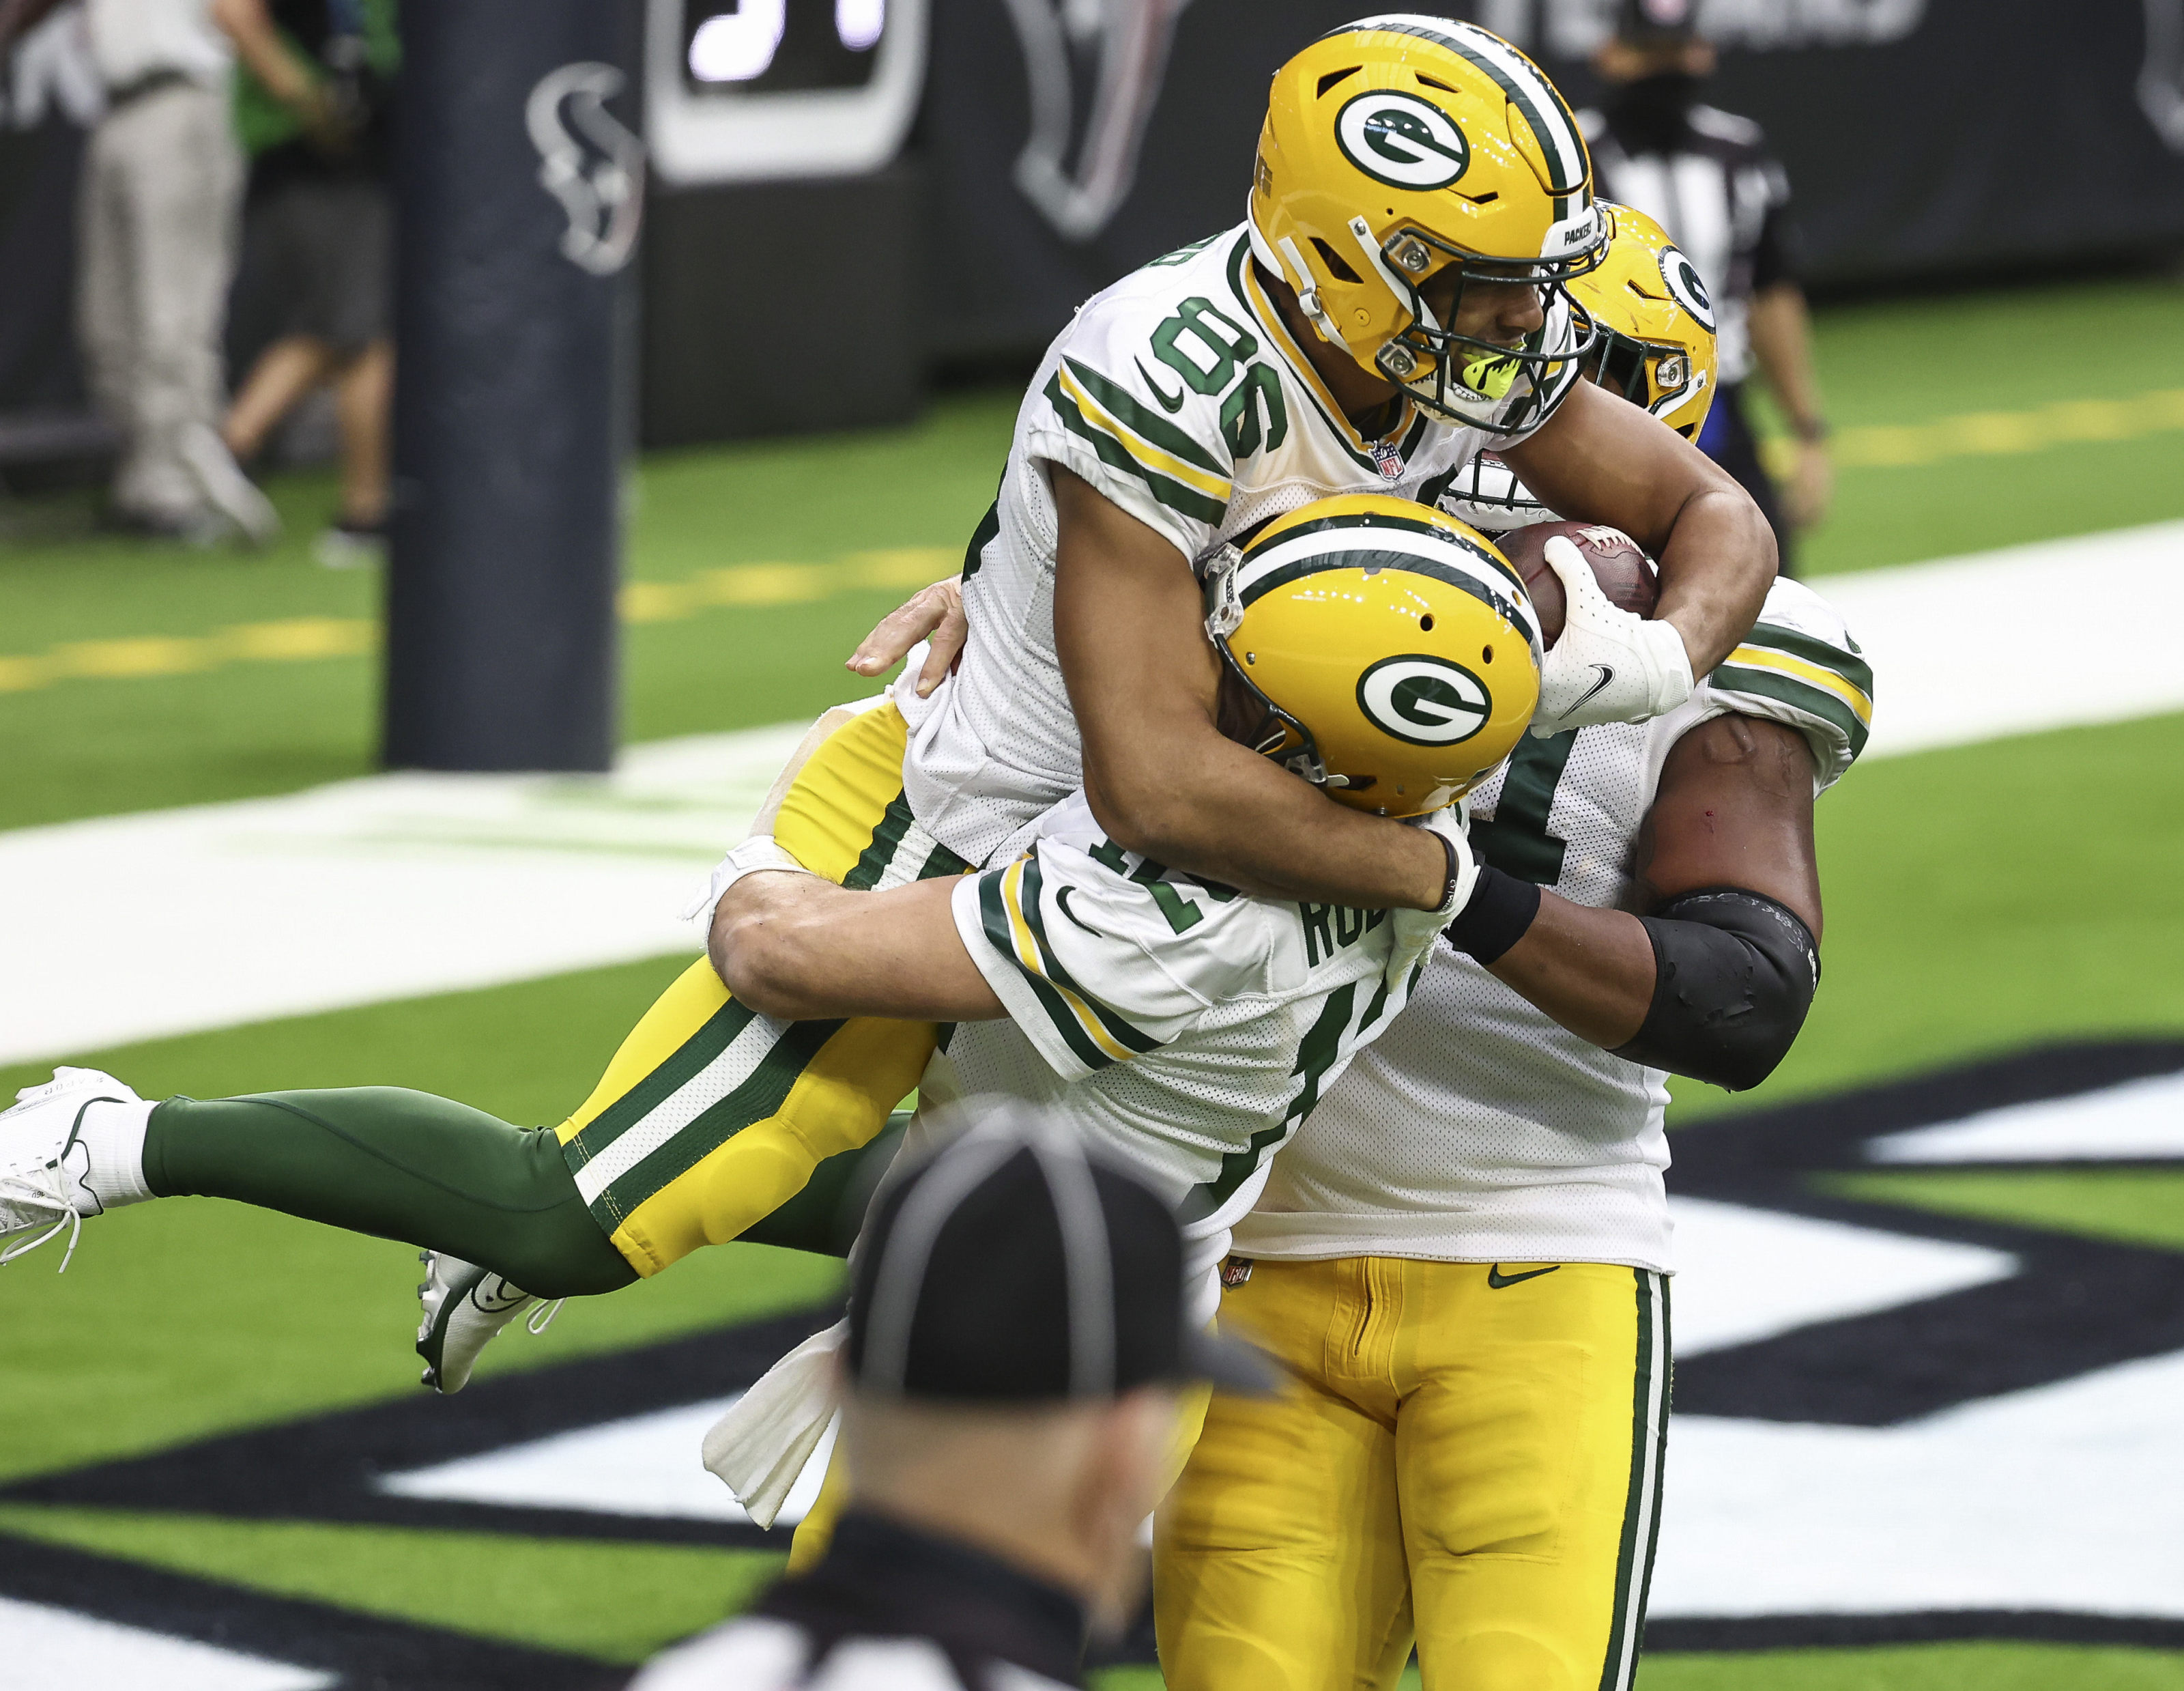 Green Bay Packers Studs And Duds From Week 7 Vs Texans Packers vs texans week 7,packers vs texans replay, pack. https nflspinzone com 2020 10 25 green bay packers studs duds week 7 vs texans